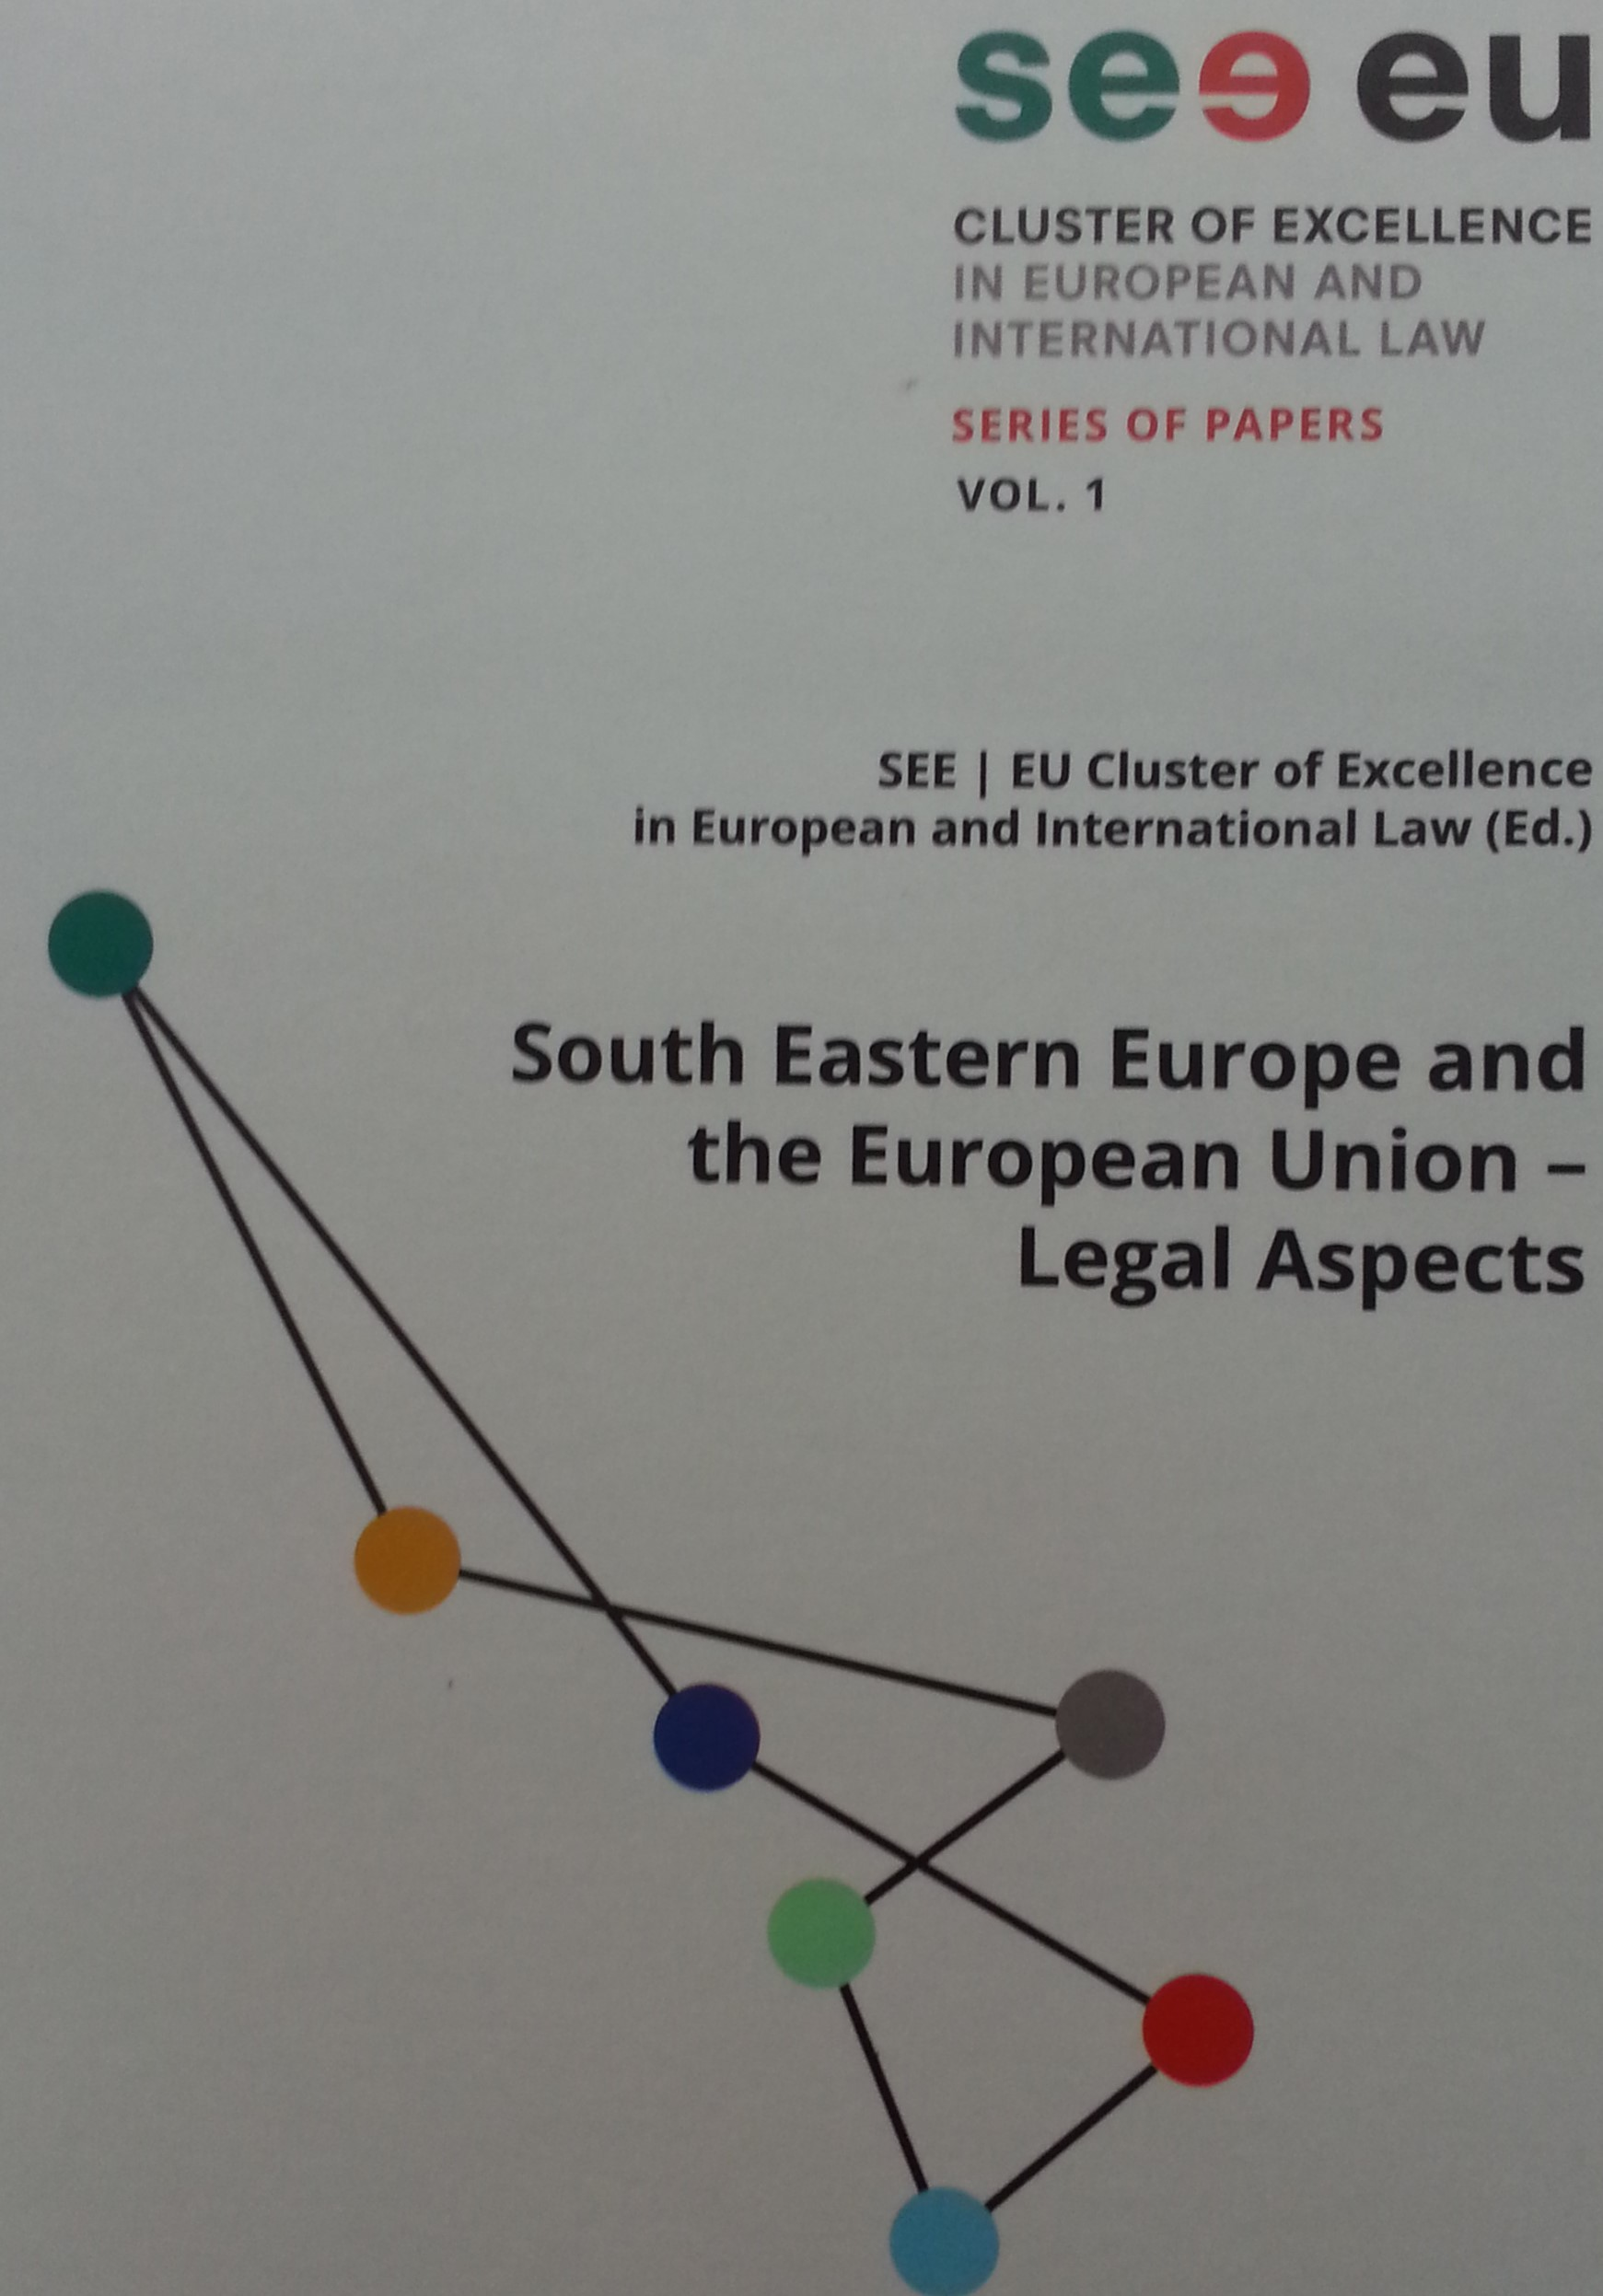 South Eastern Europe and the European Union Legal Aspects